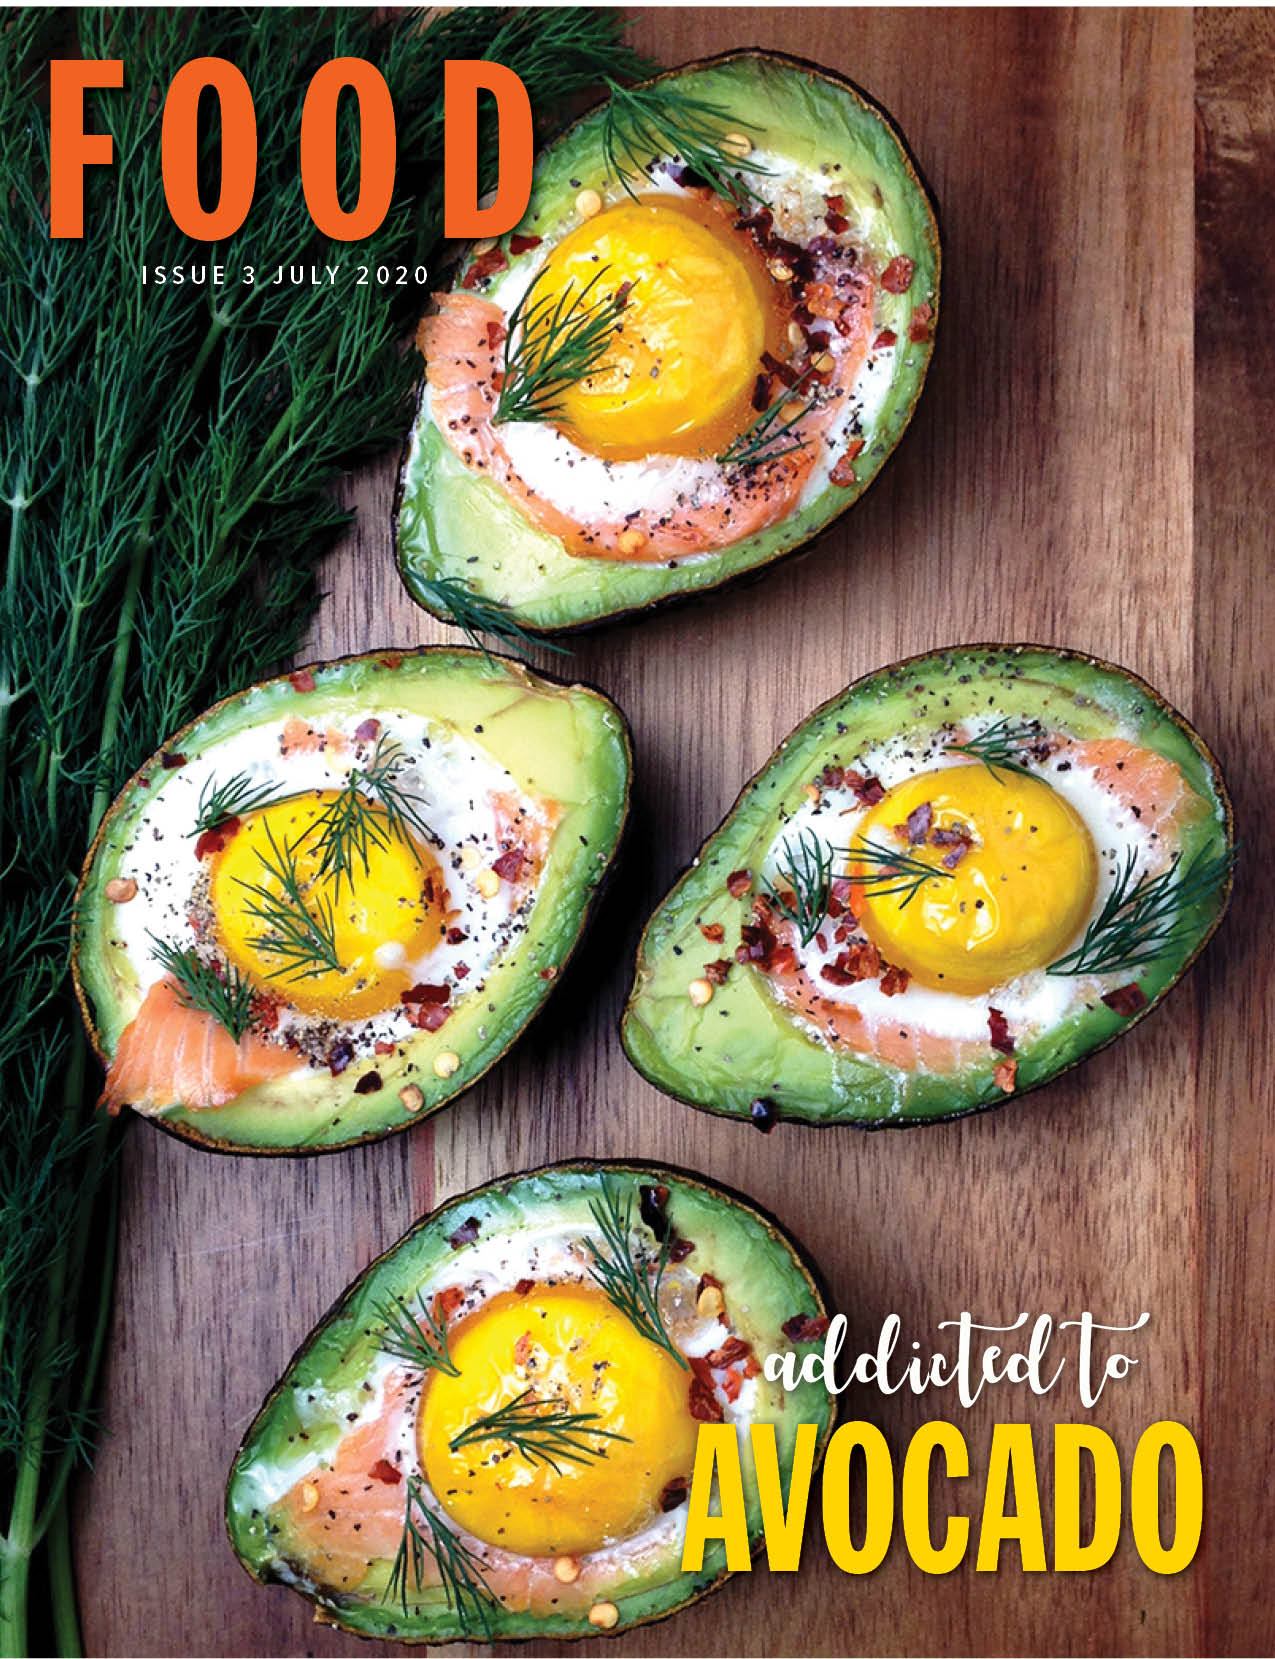 IOL Food: Avocado